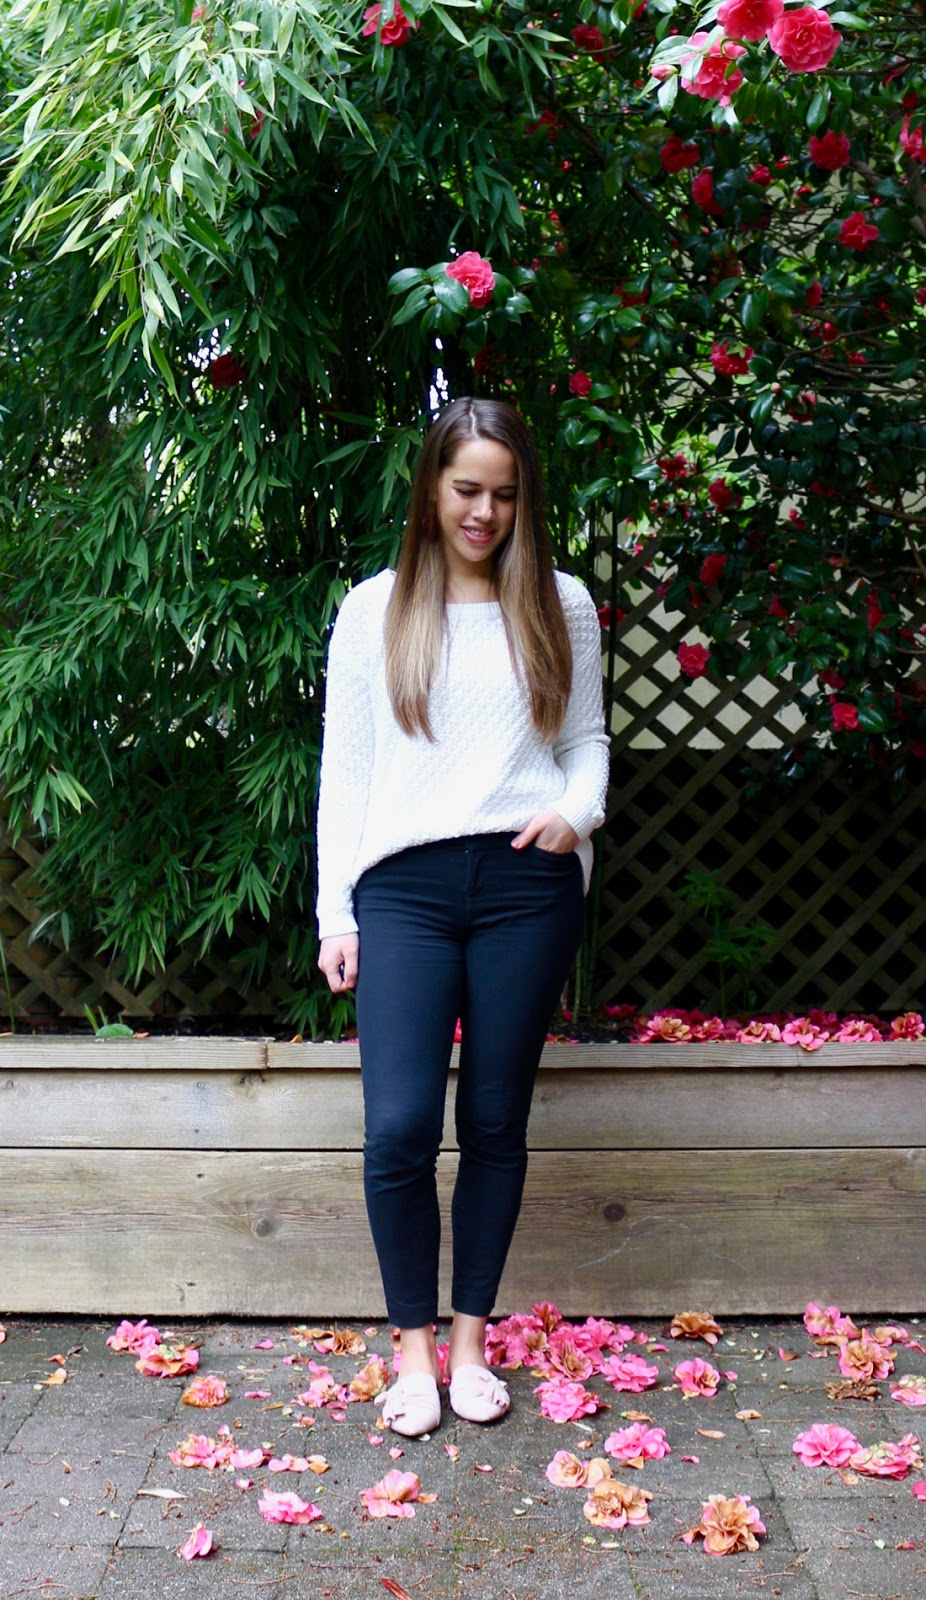 Jules in Flats - Textured Knit Sweater with Ankle Pants (Business Casual Spring Workwear on a Budget)